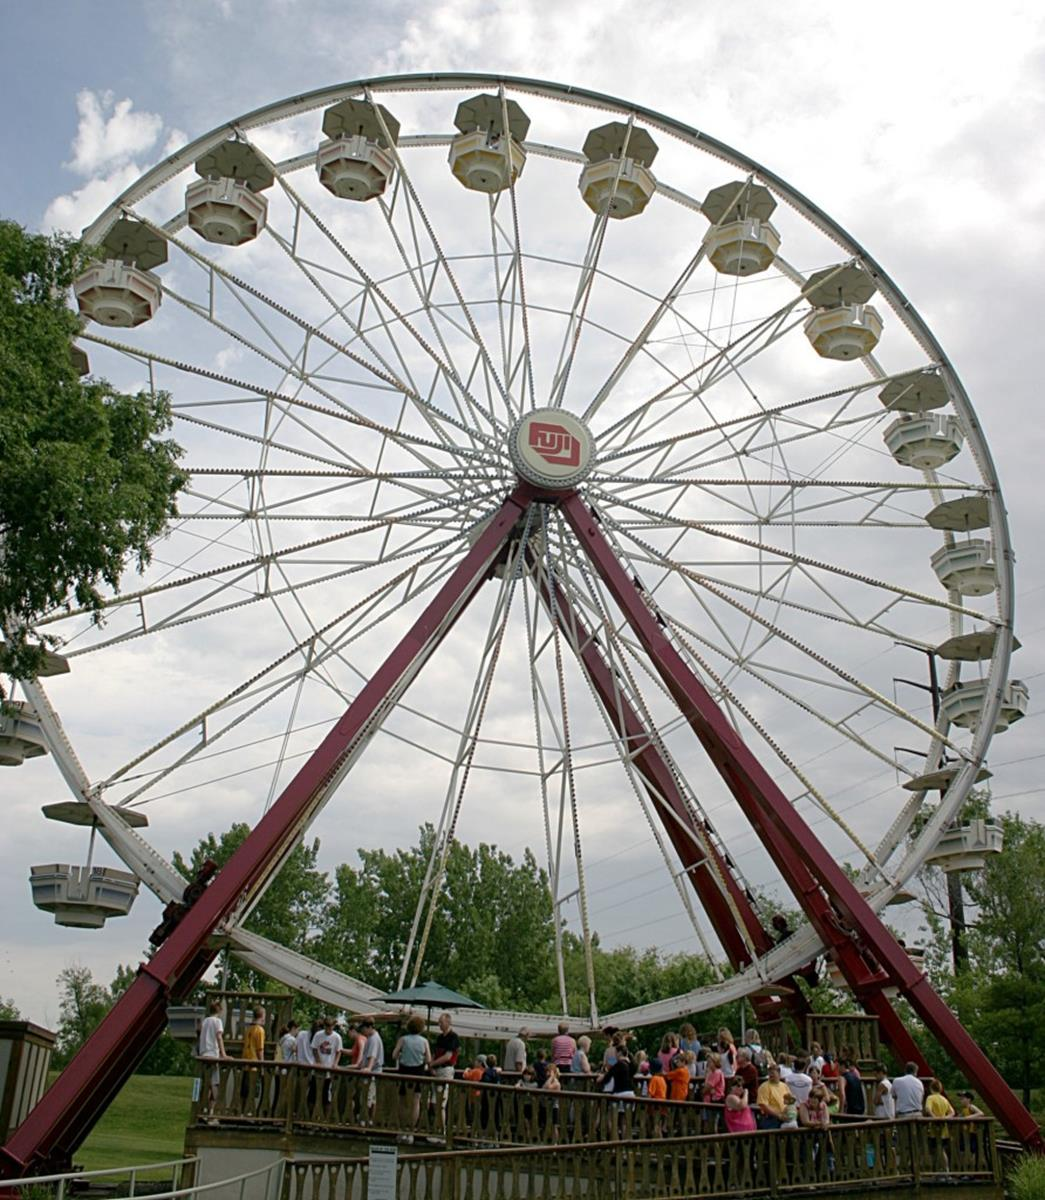 Giant Skywheel at Adventureland